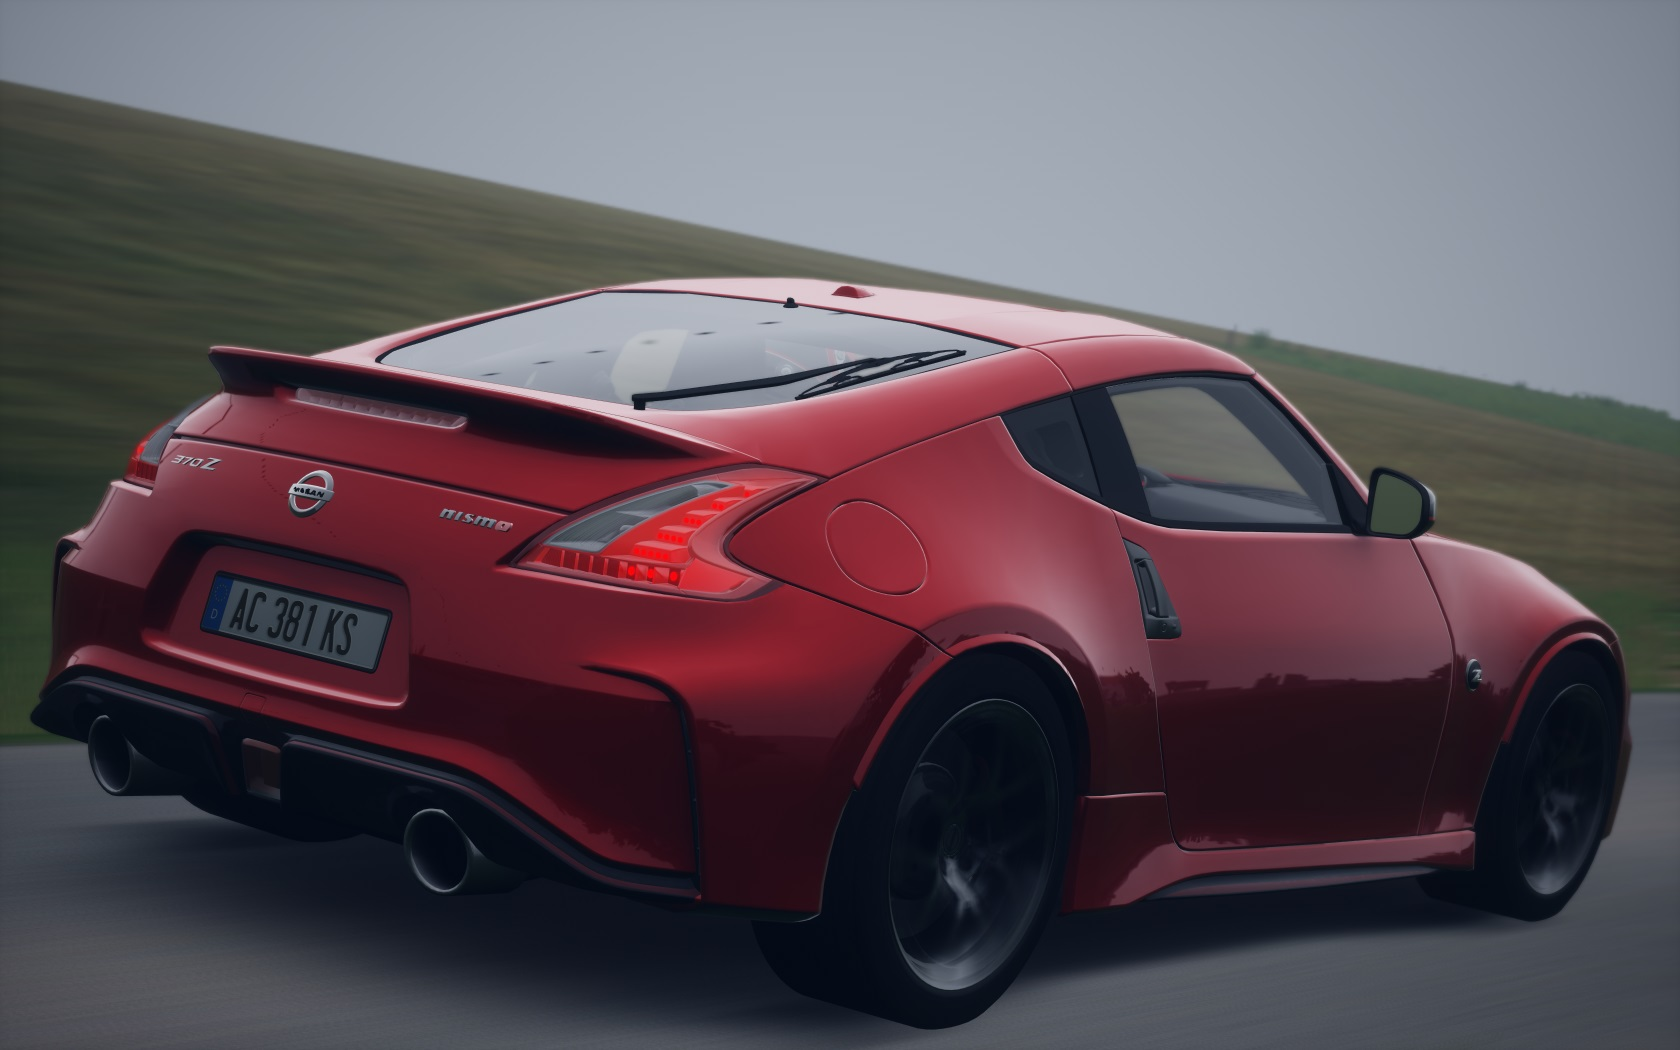 Screenshot_ks_nissan_370z_aspertsham_29-12-118-13-47-21.jpg